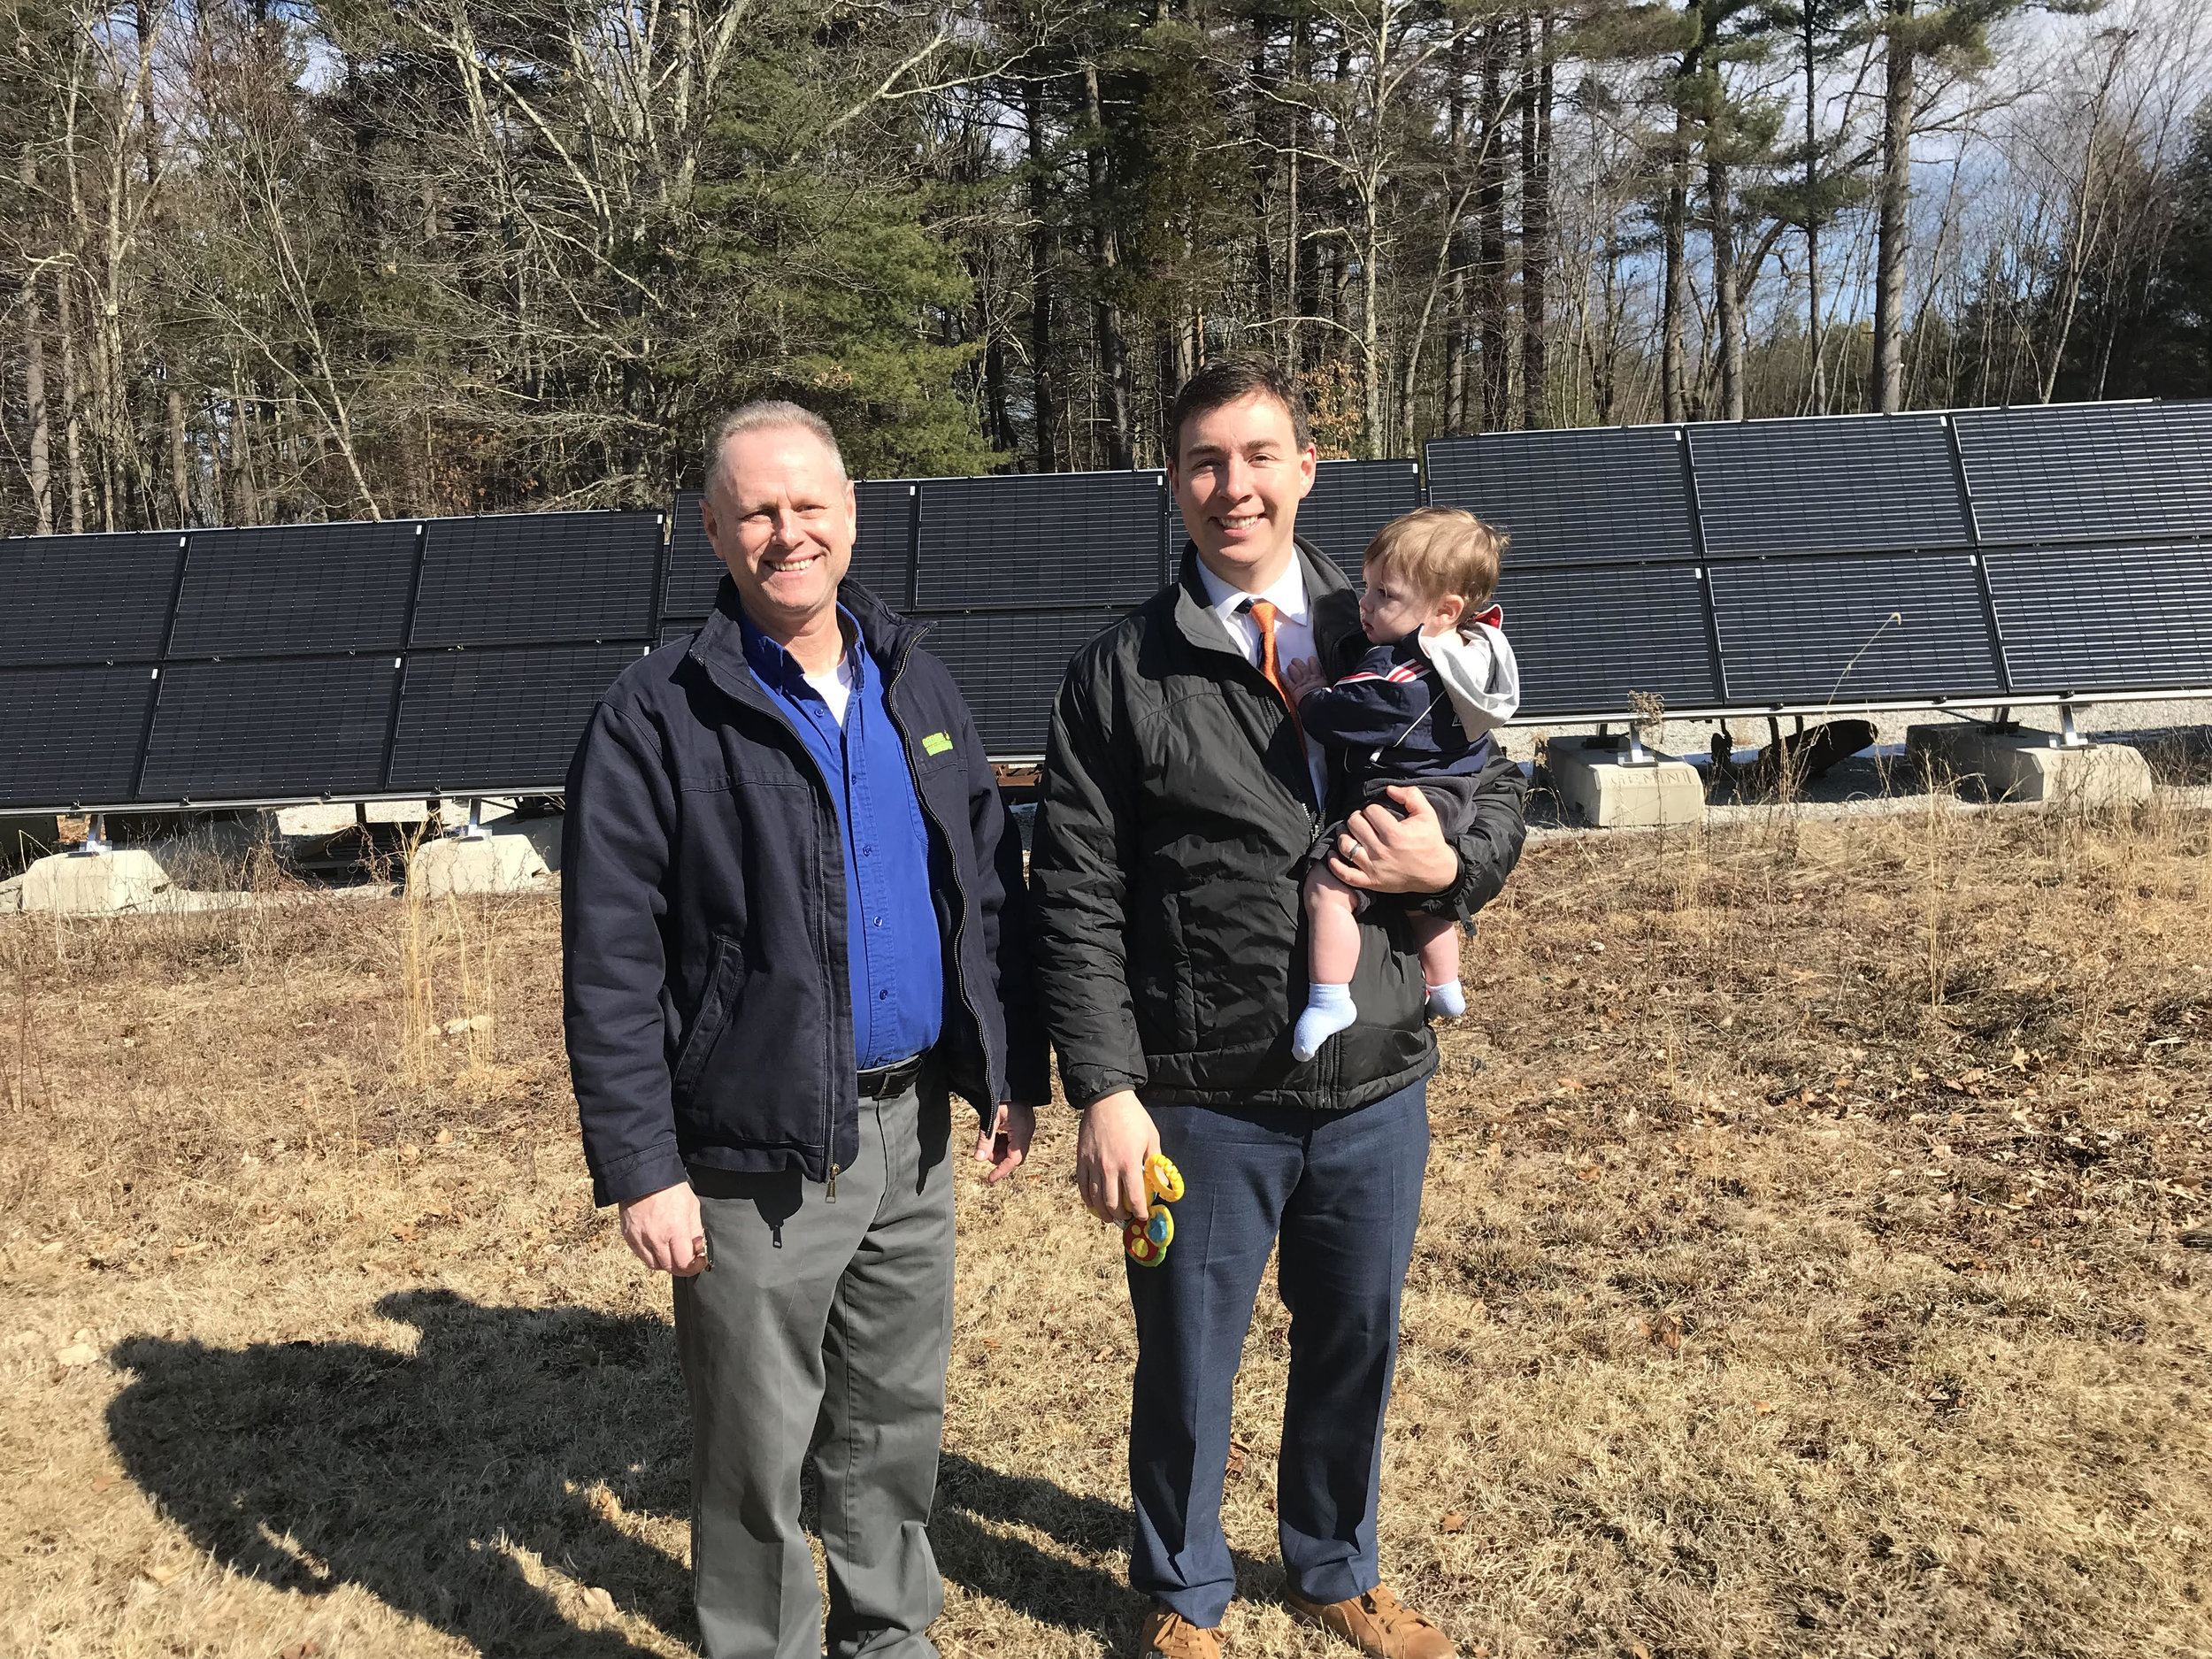 Mike Kelly and Senator Ryan Fattman with son Grant at Mass Renewable's residential ground-mount install in Mendon.